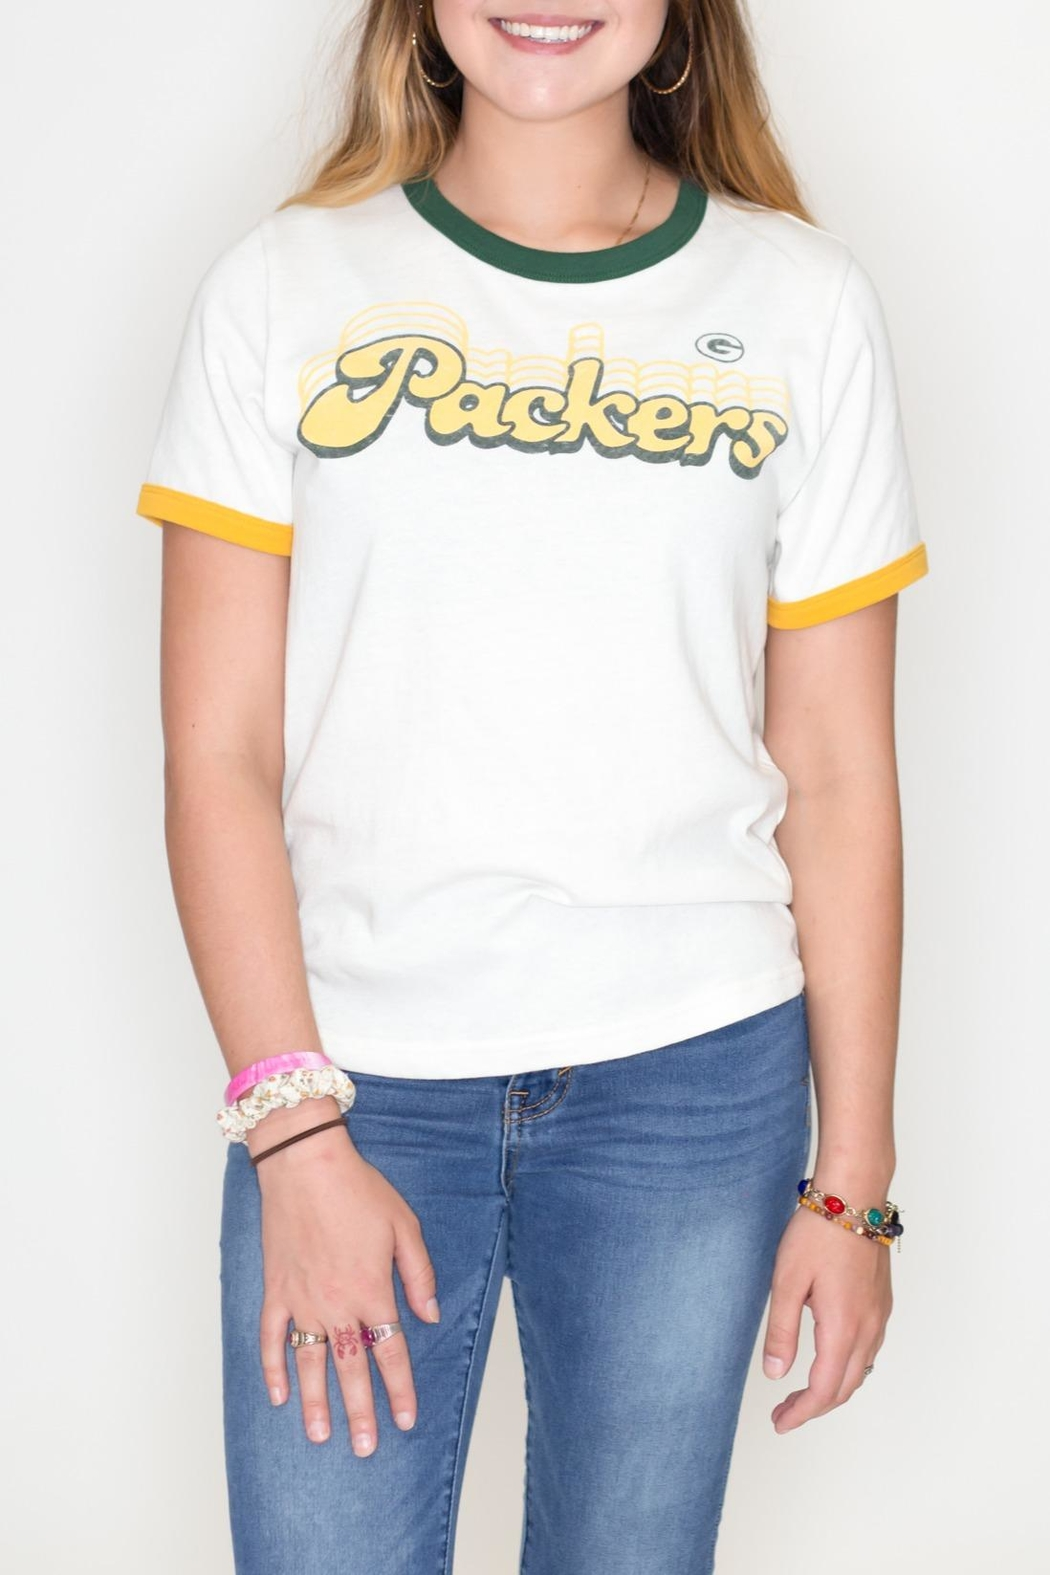 Junk Food Clothing Green Bay Packers - Front Cropped Image